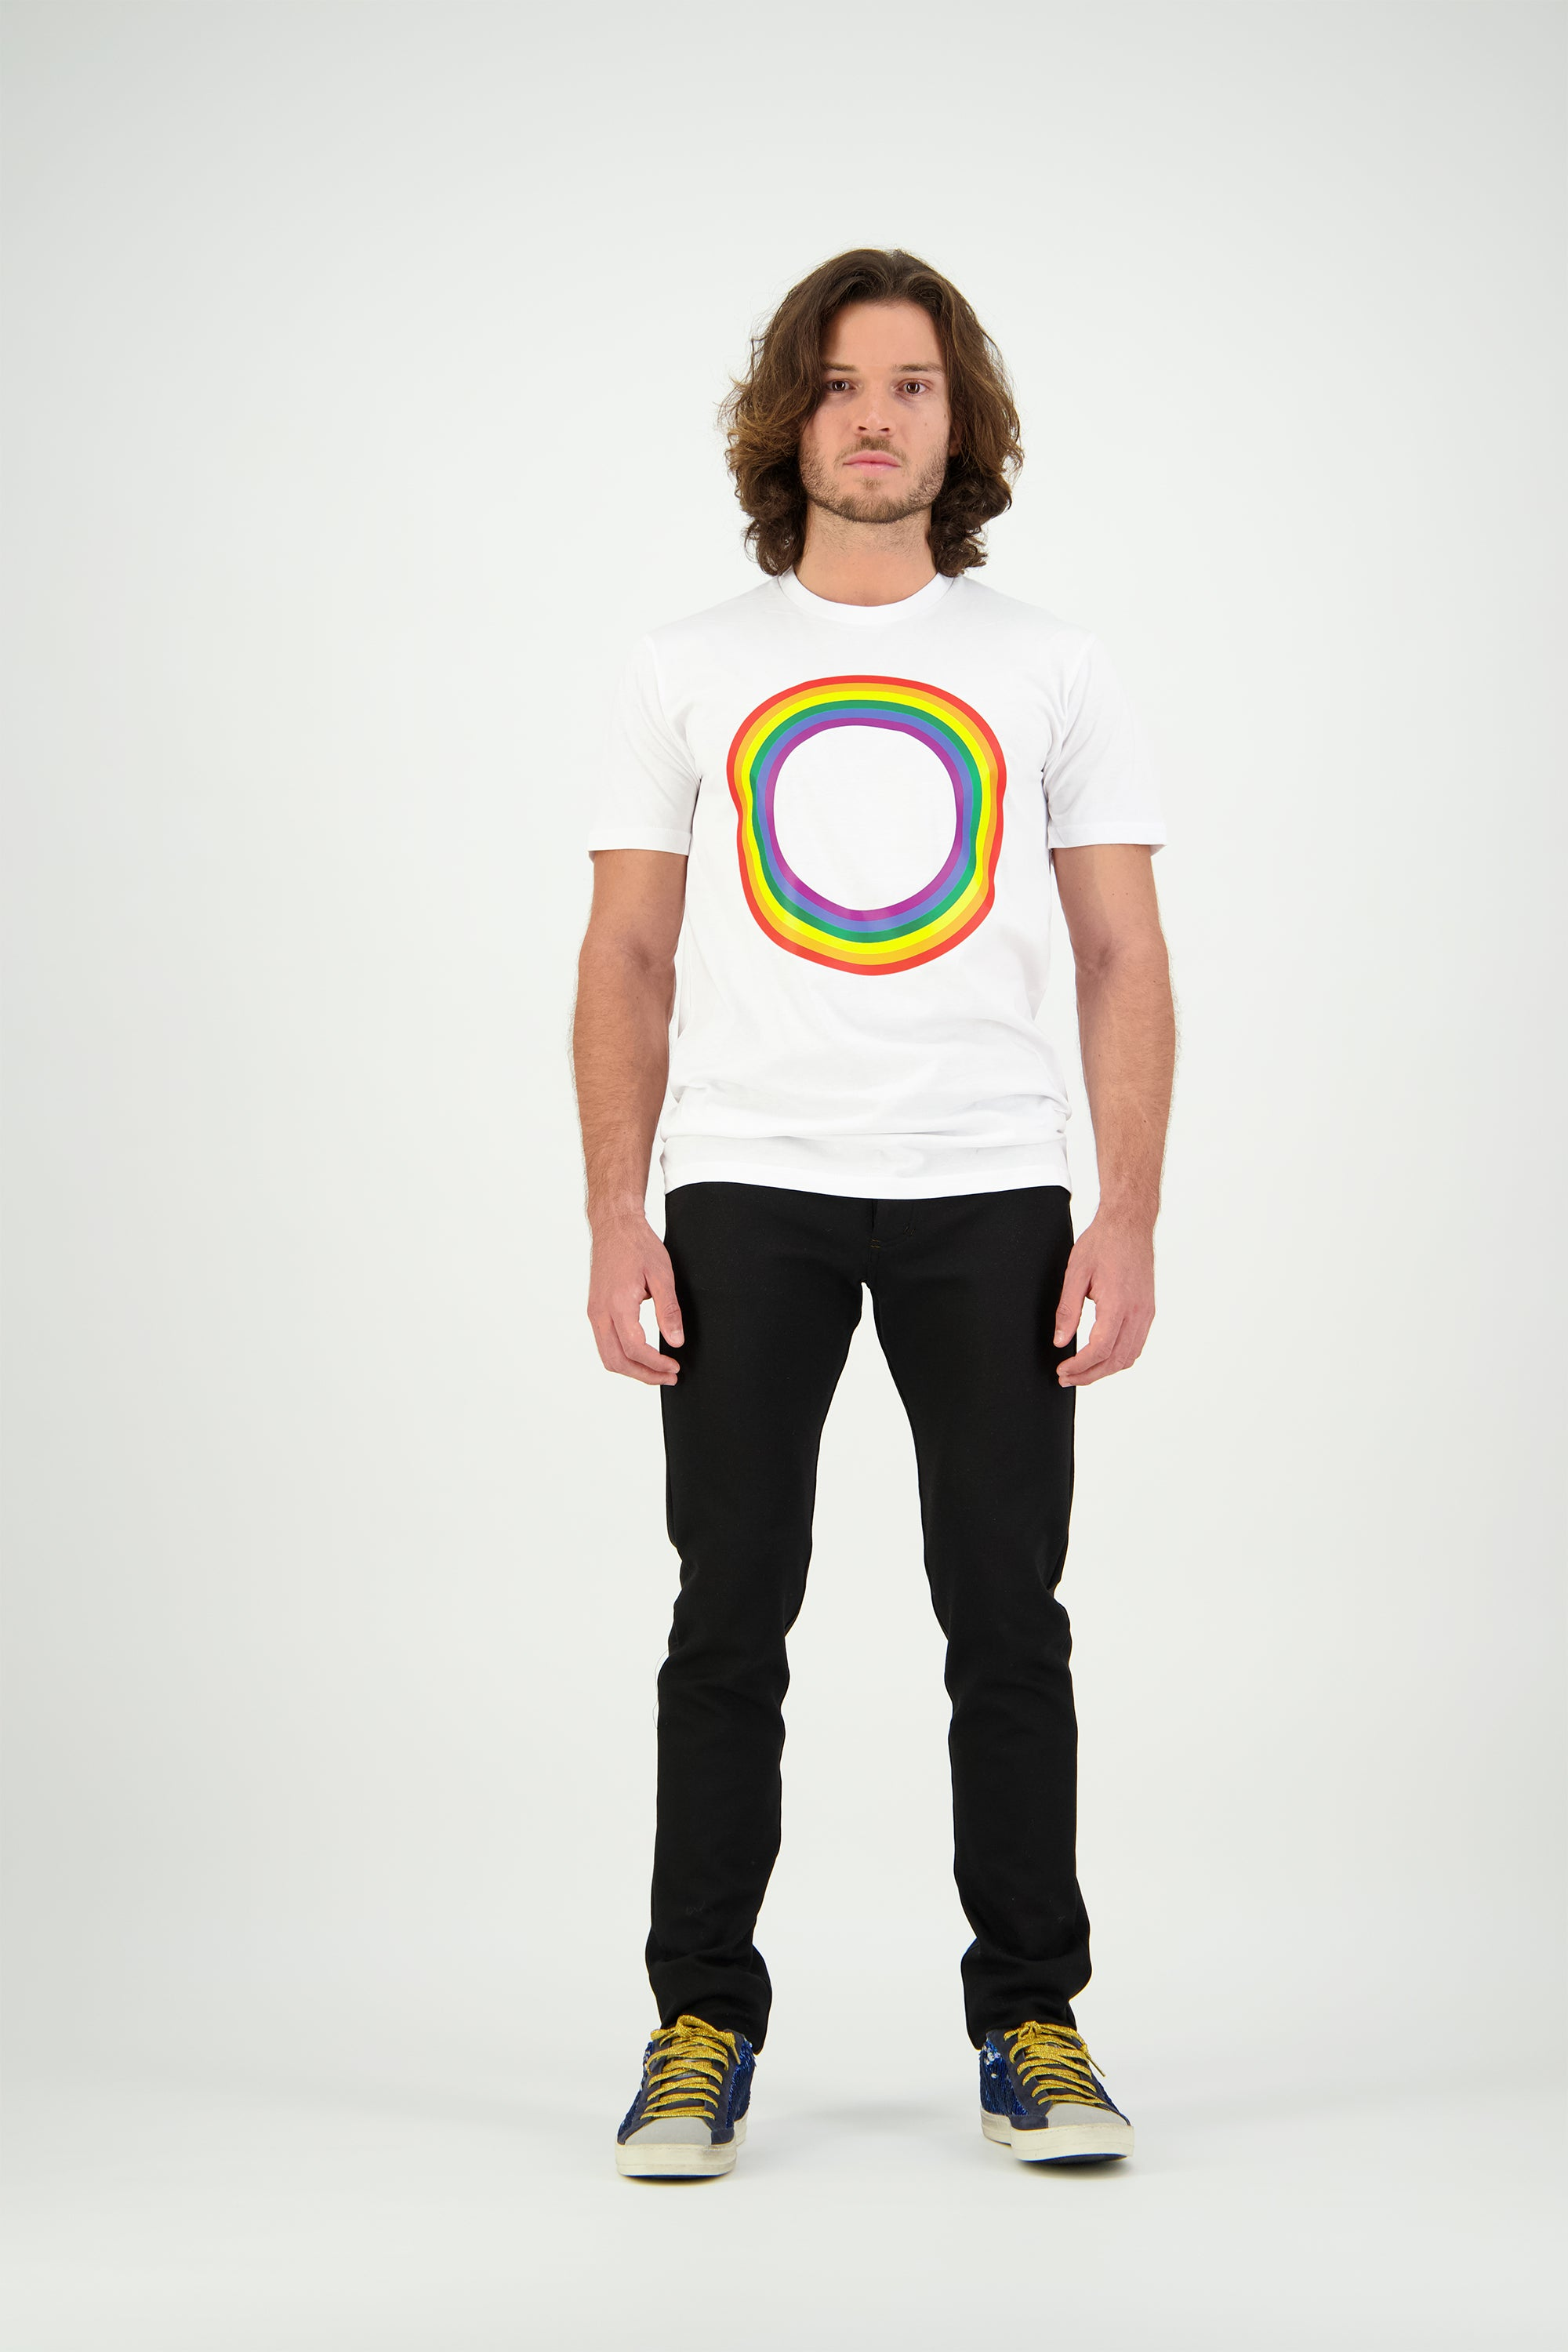 Vol.1 SAFE SPACE ALLIANCE T White - Unisex